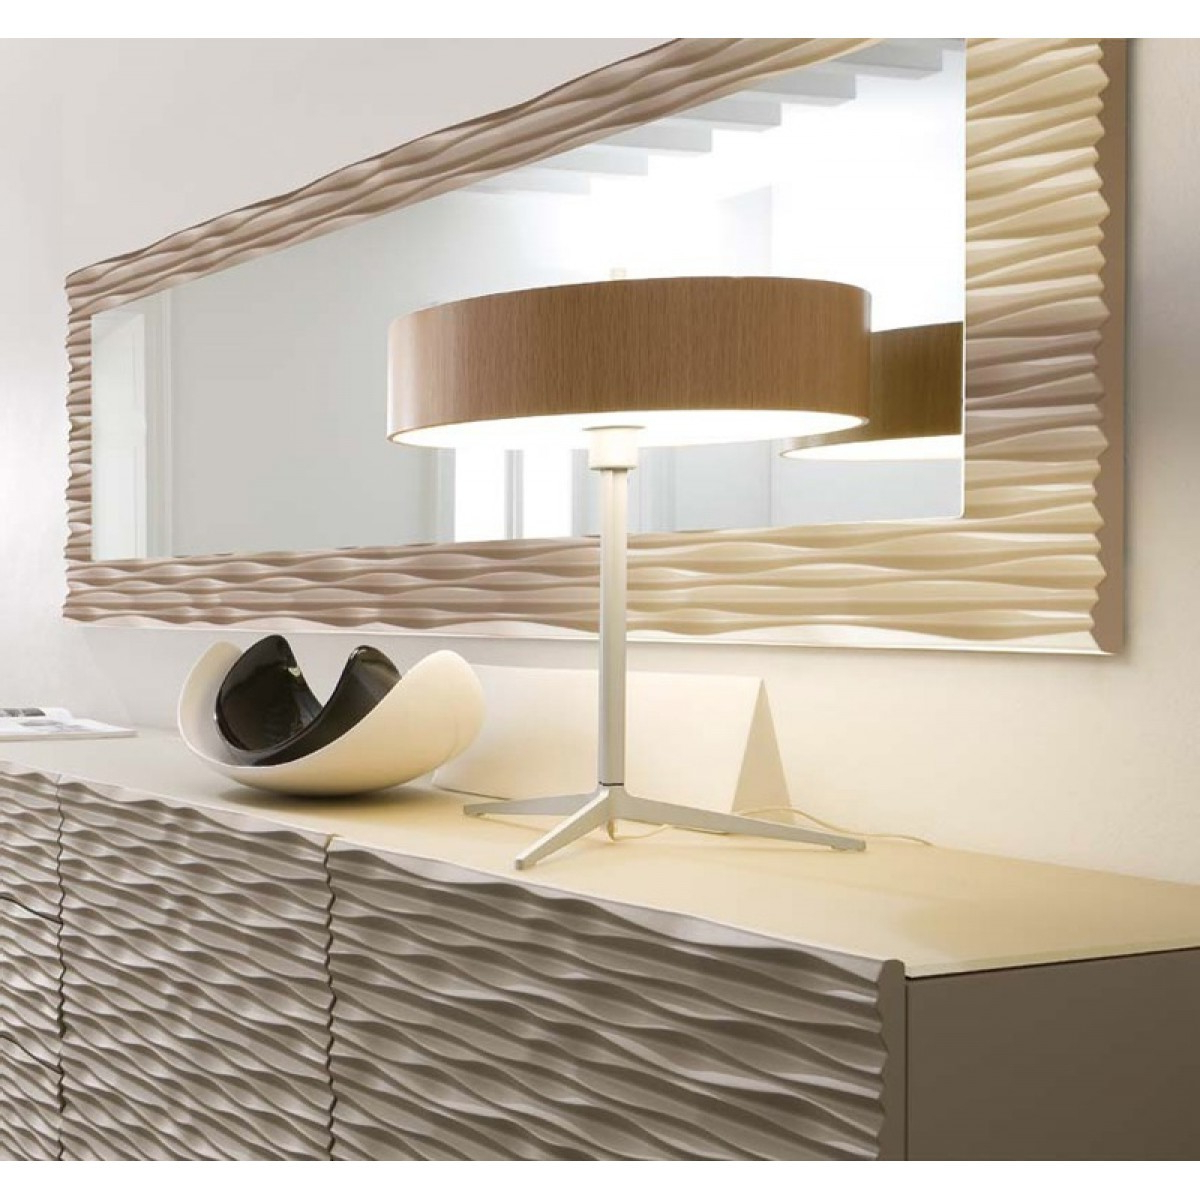 Brilliant Stylish Wall Mirrors That Look Like A Little Throughout Well Known Stylish Wall Mirrors (View 9 of 20)